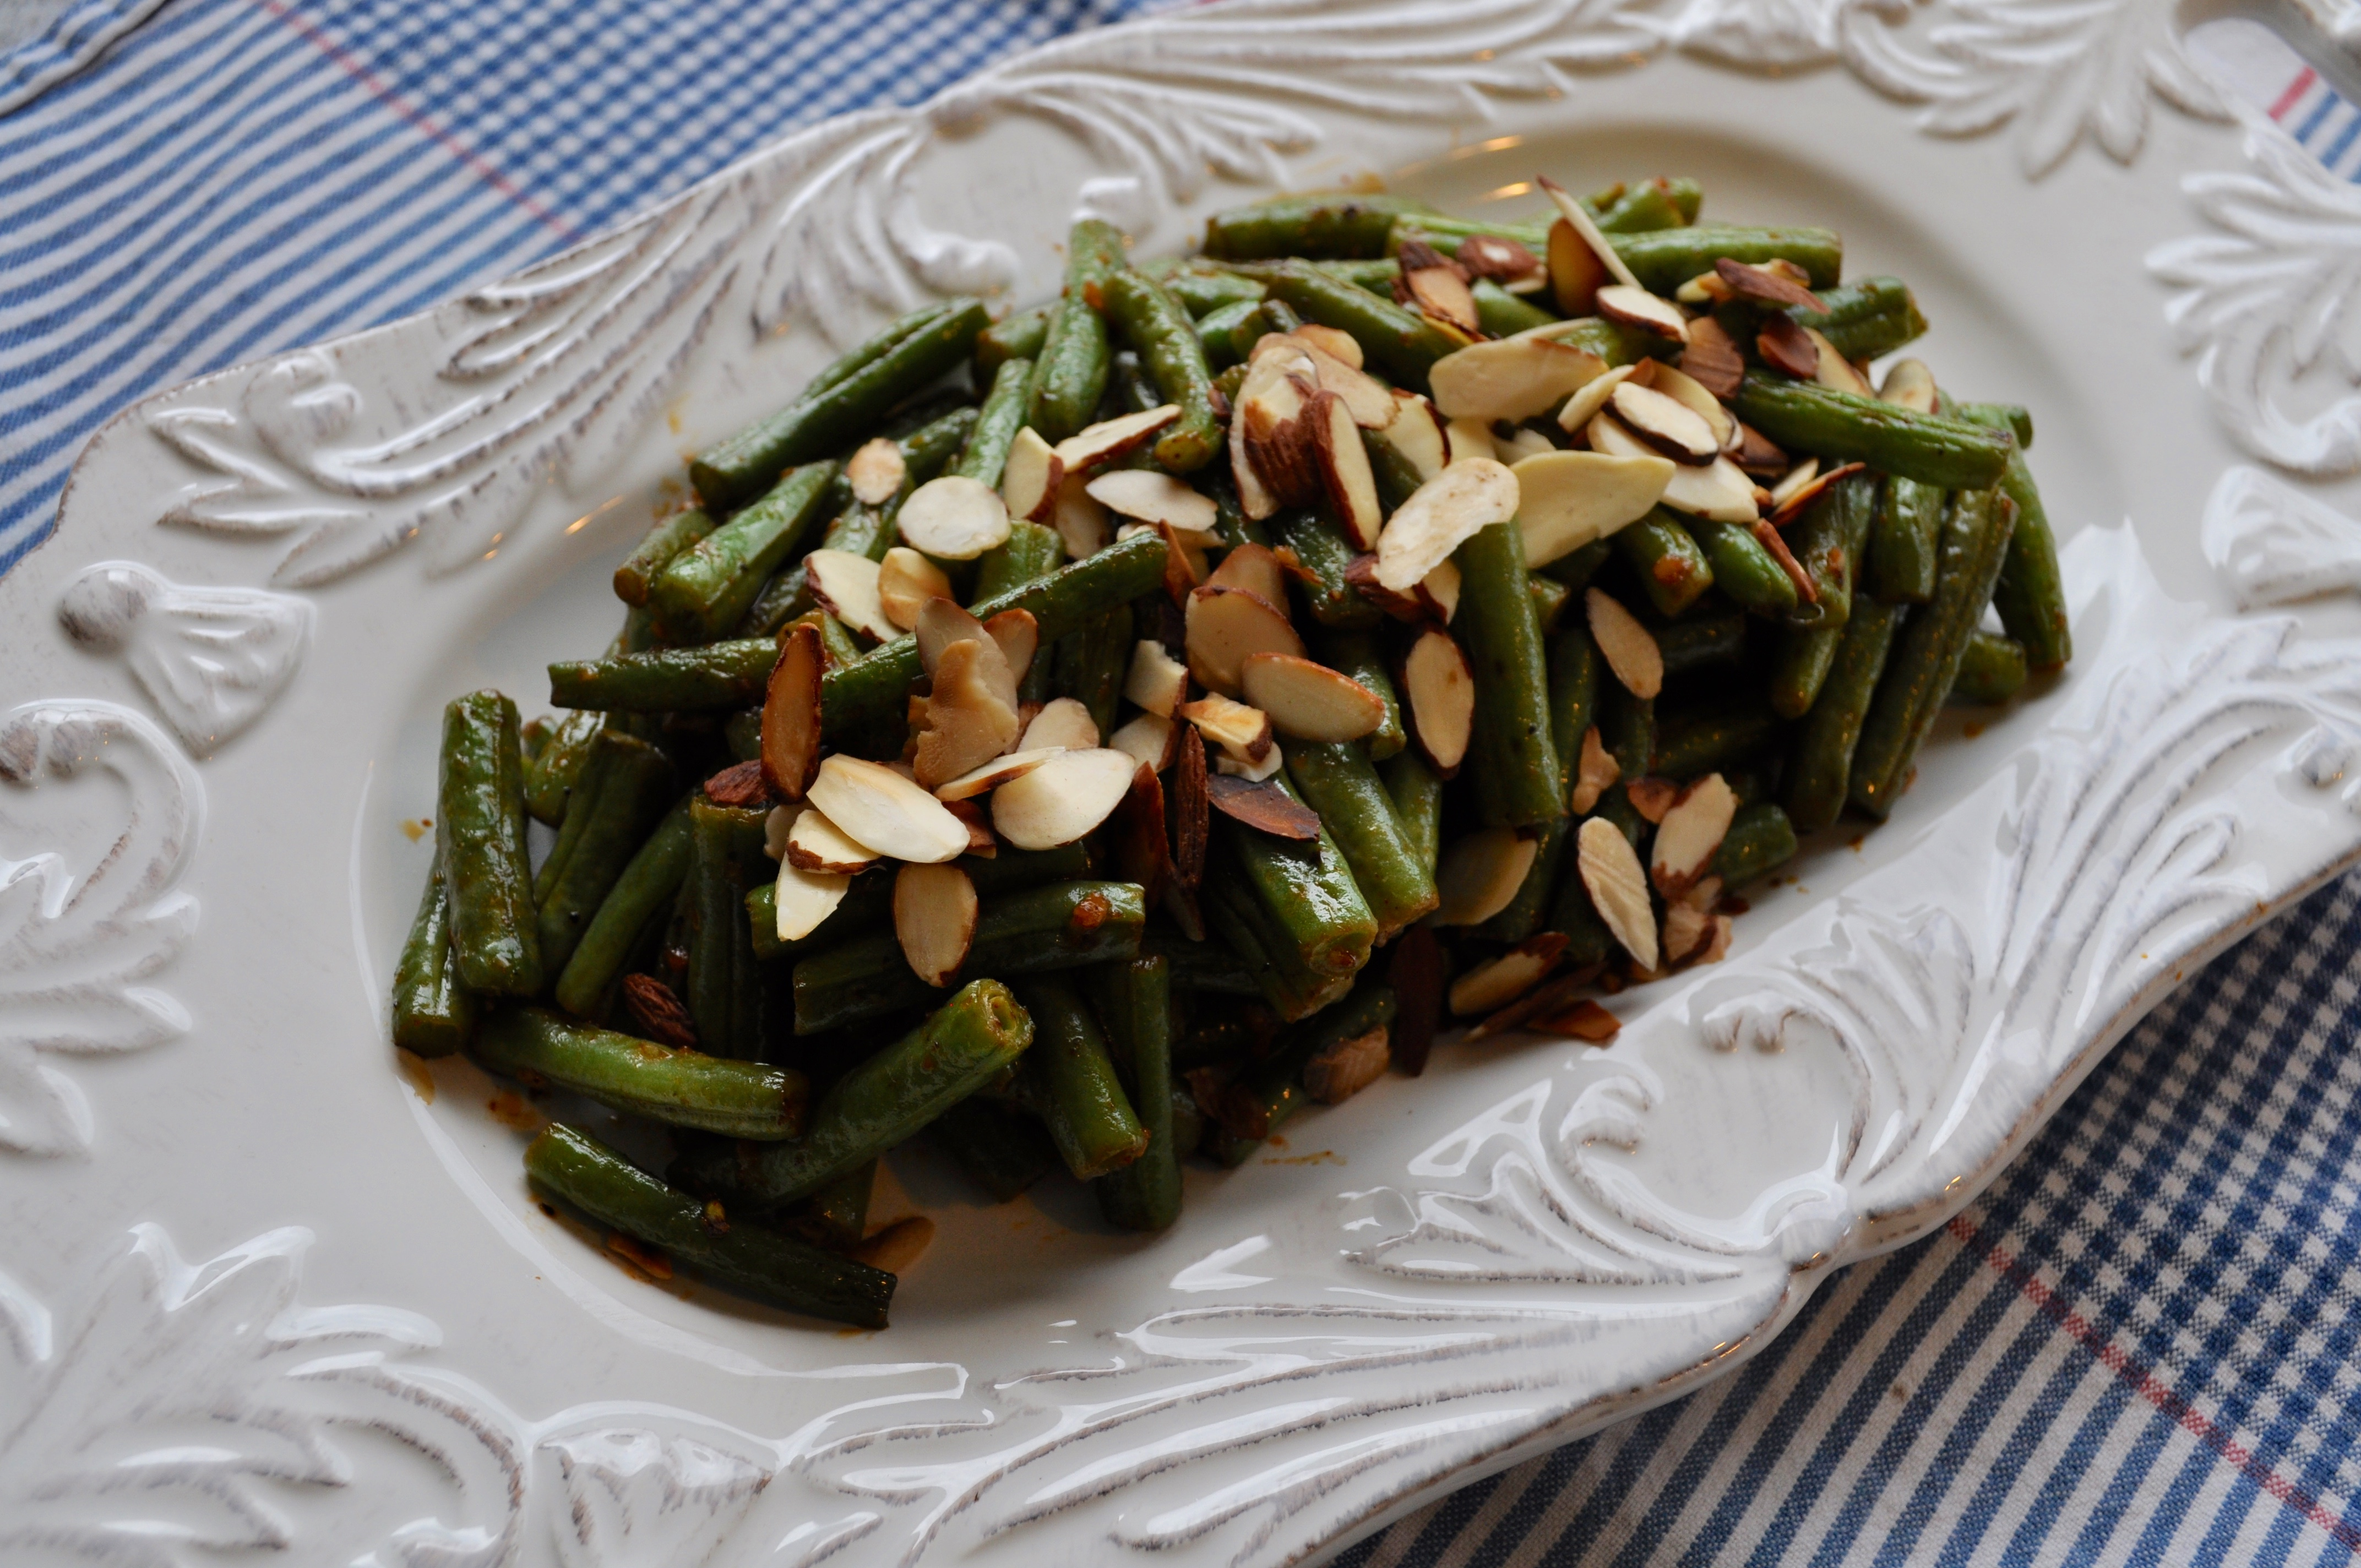 Sautéed Green Beans with Smoked Paprika and Almonds